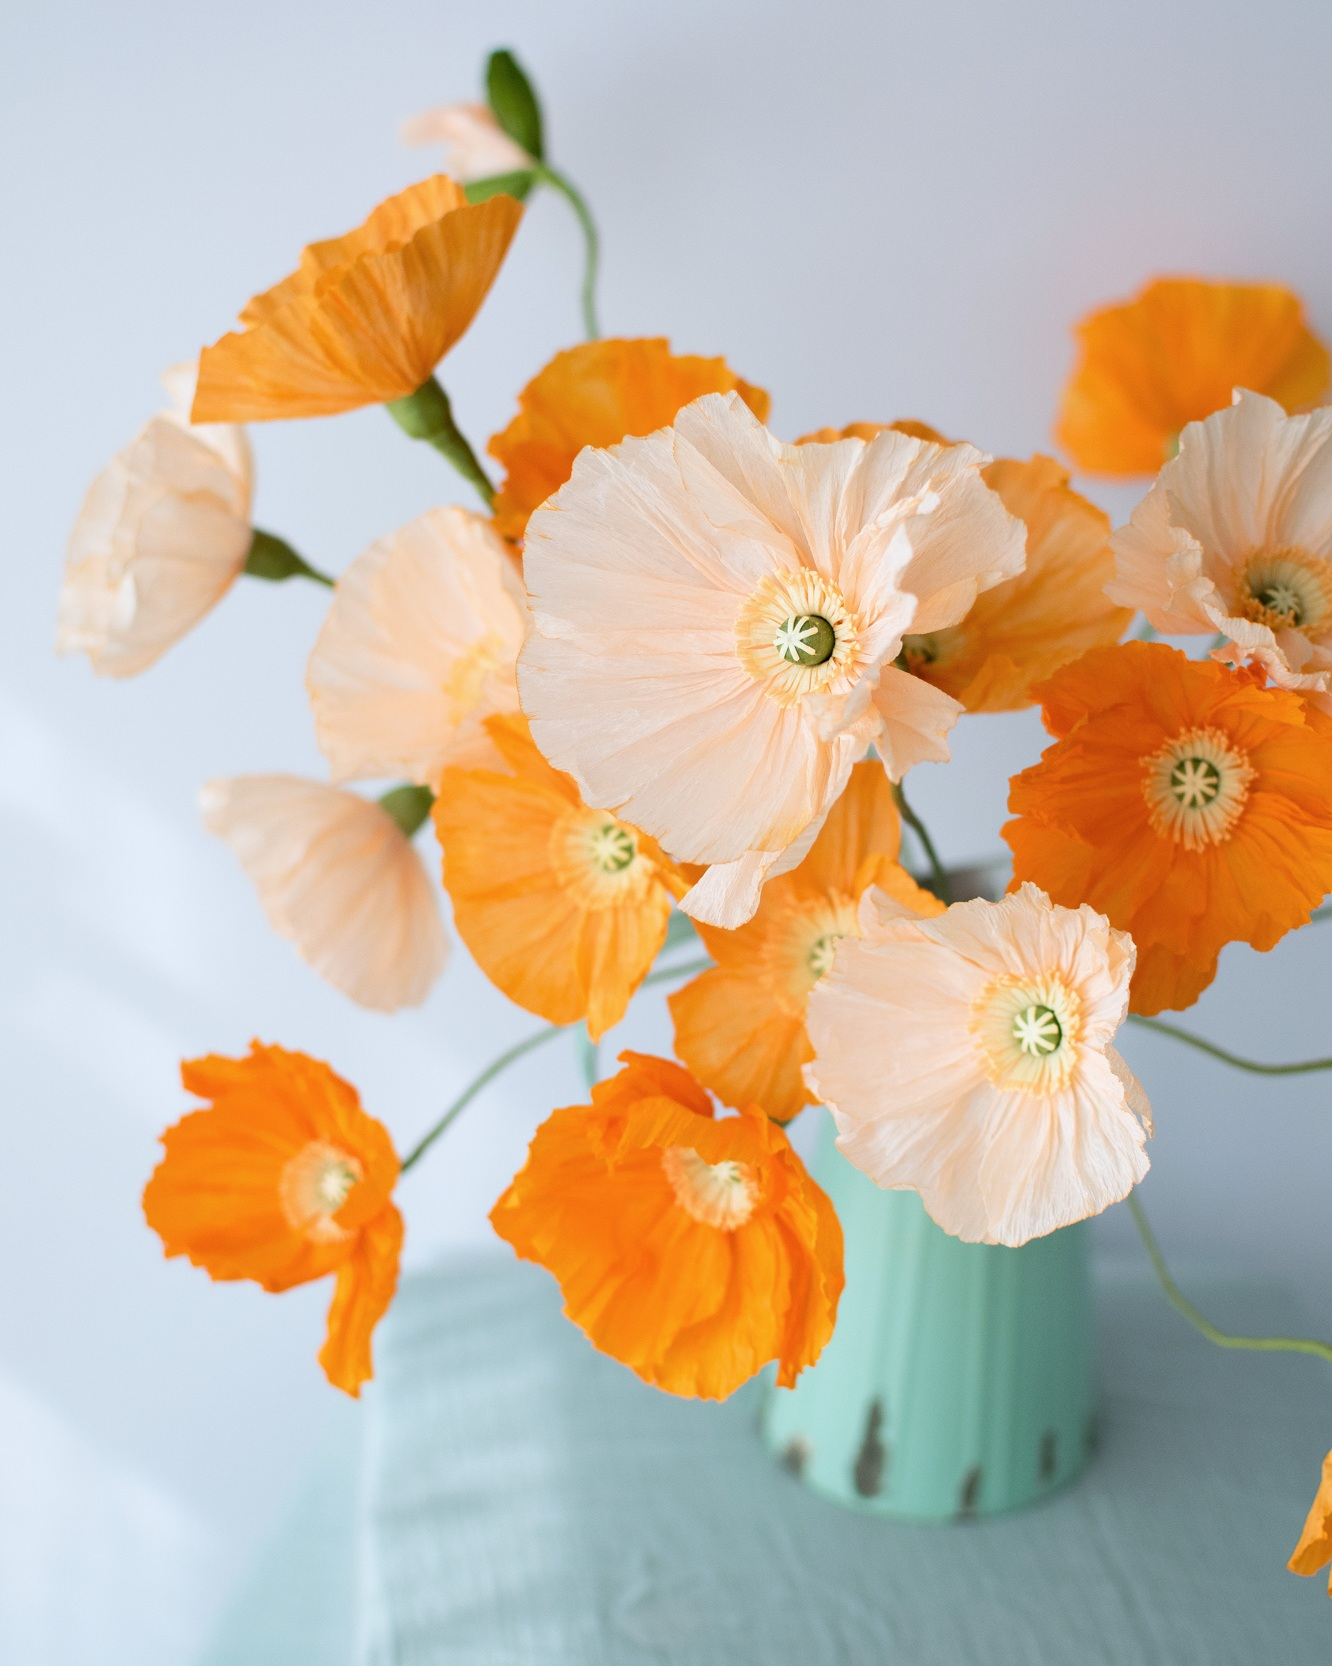 Orange%2C-Pink%2C-Burgundy-Paper-Flower-Bouquet-Spread-%28left-side%29-by-Crafted-to-Bloom+copy.jpg